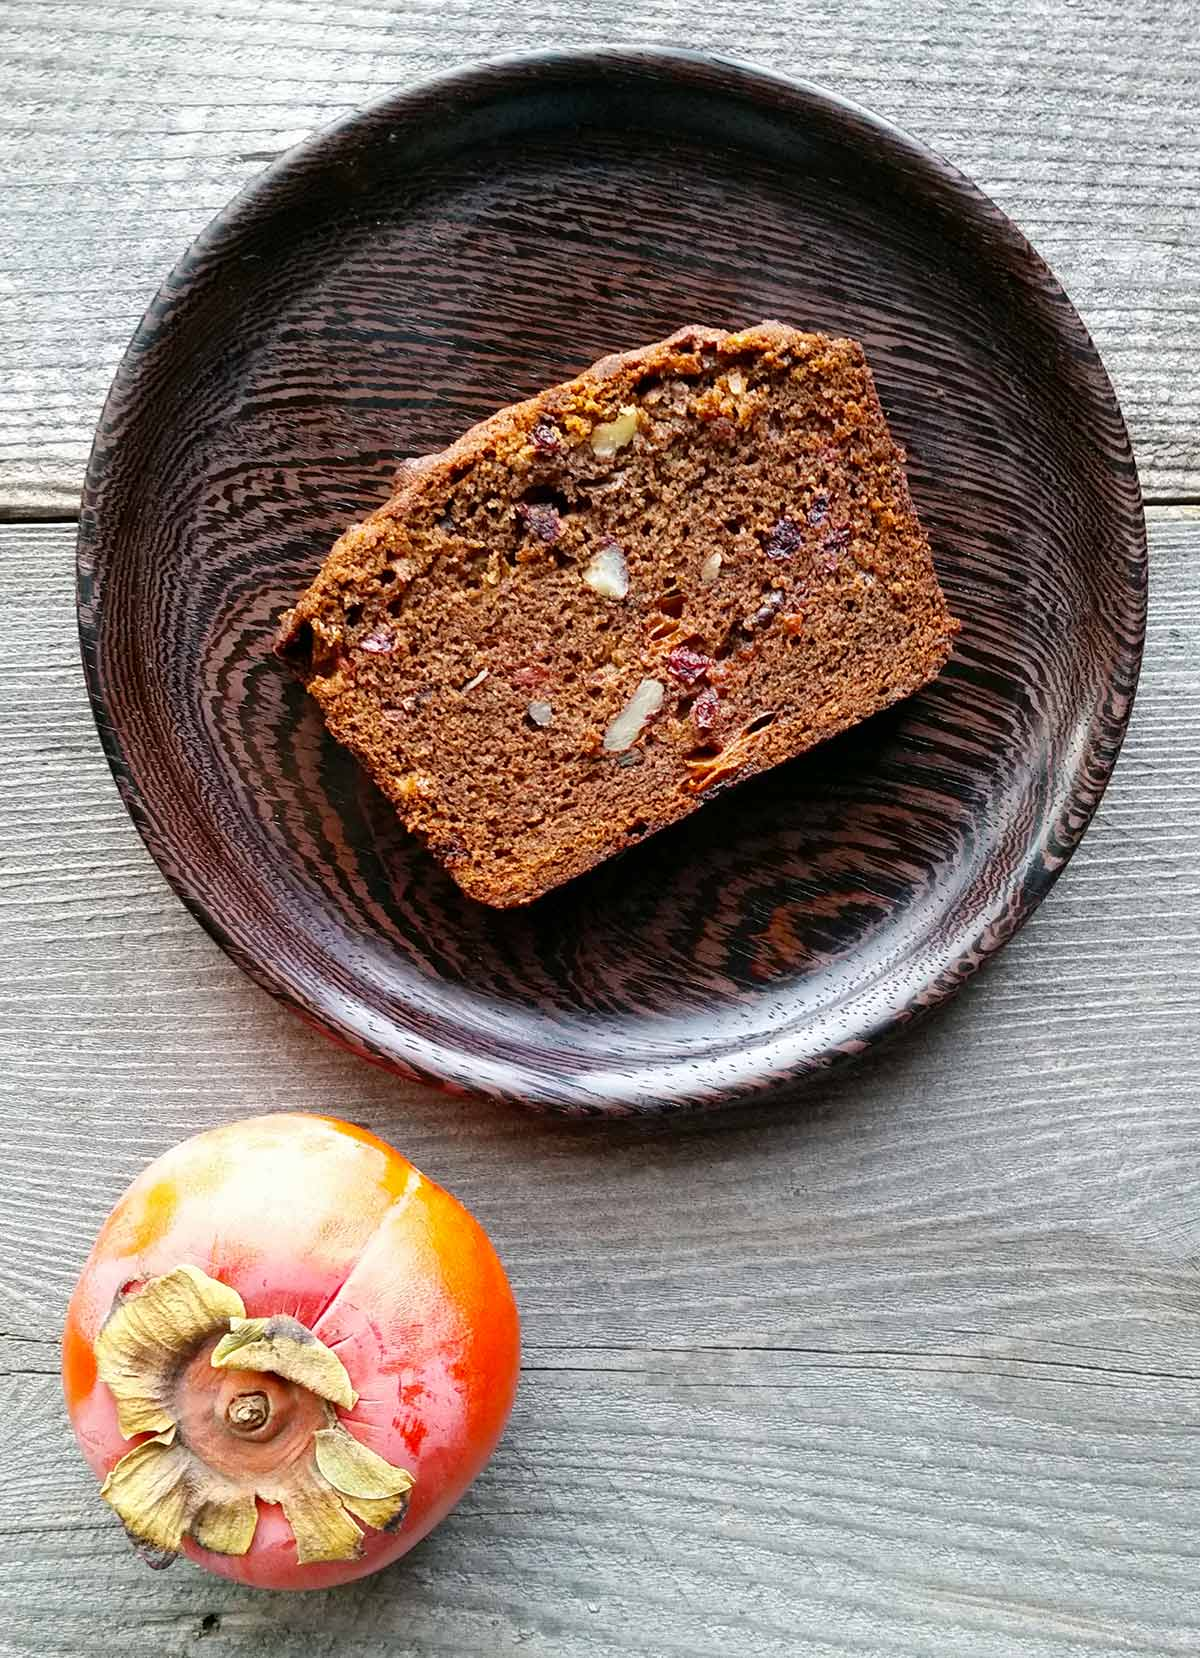 A slice of persimmon bread on a plate